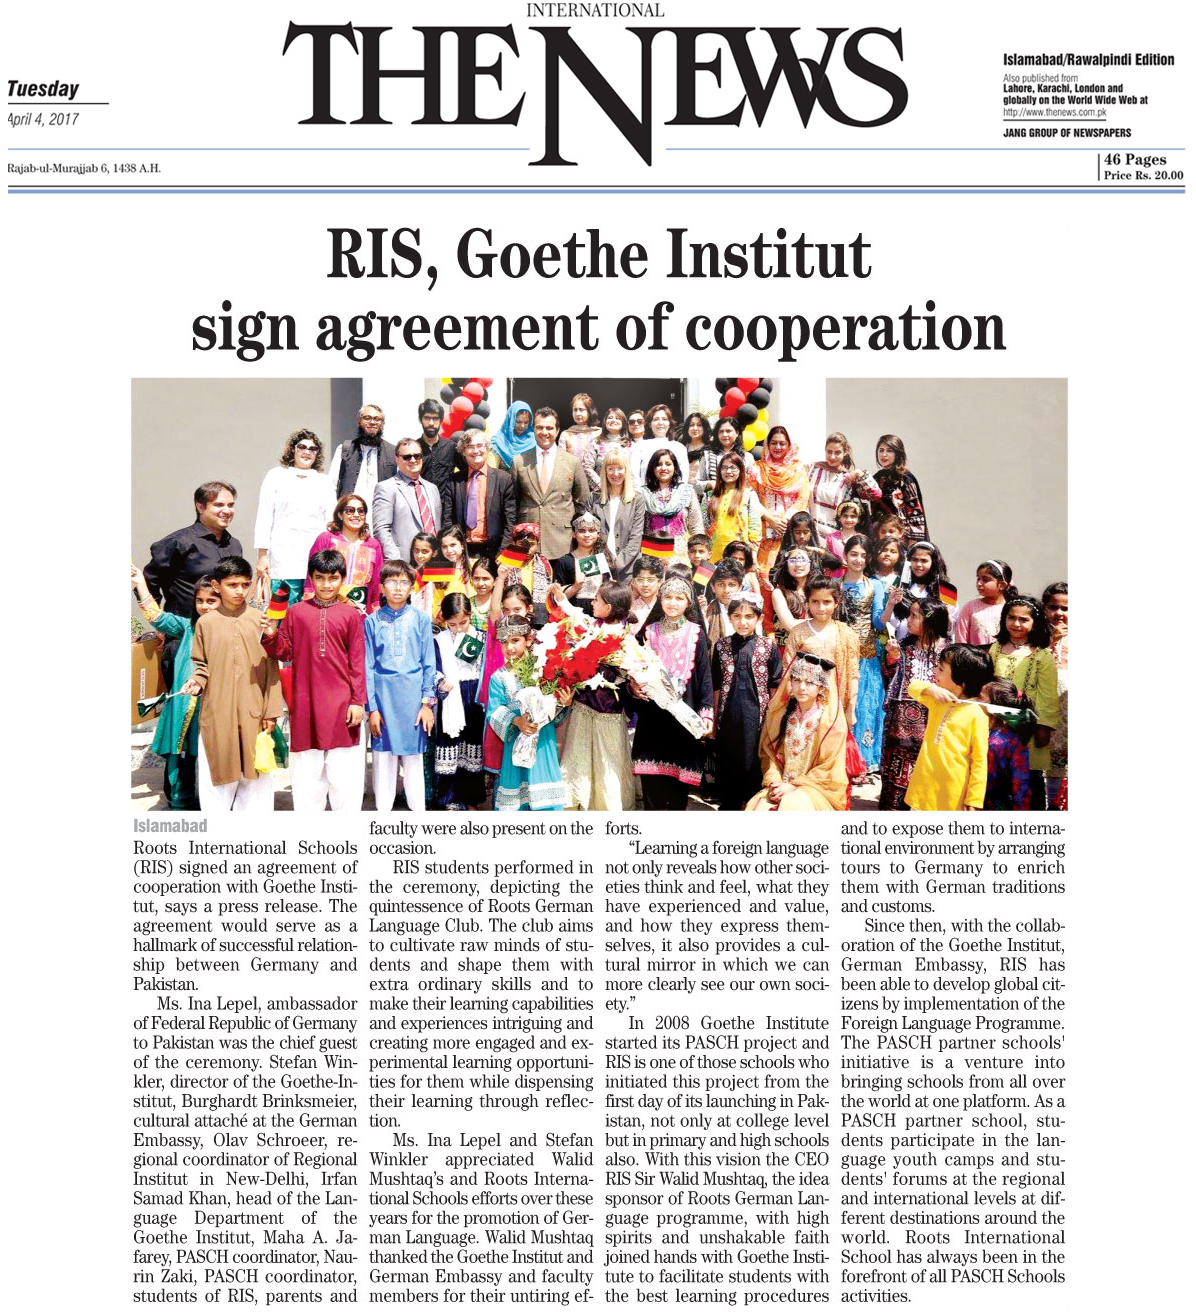 RIS Goethe Institut sign agreement of cooperation